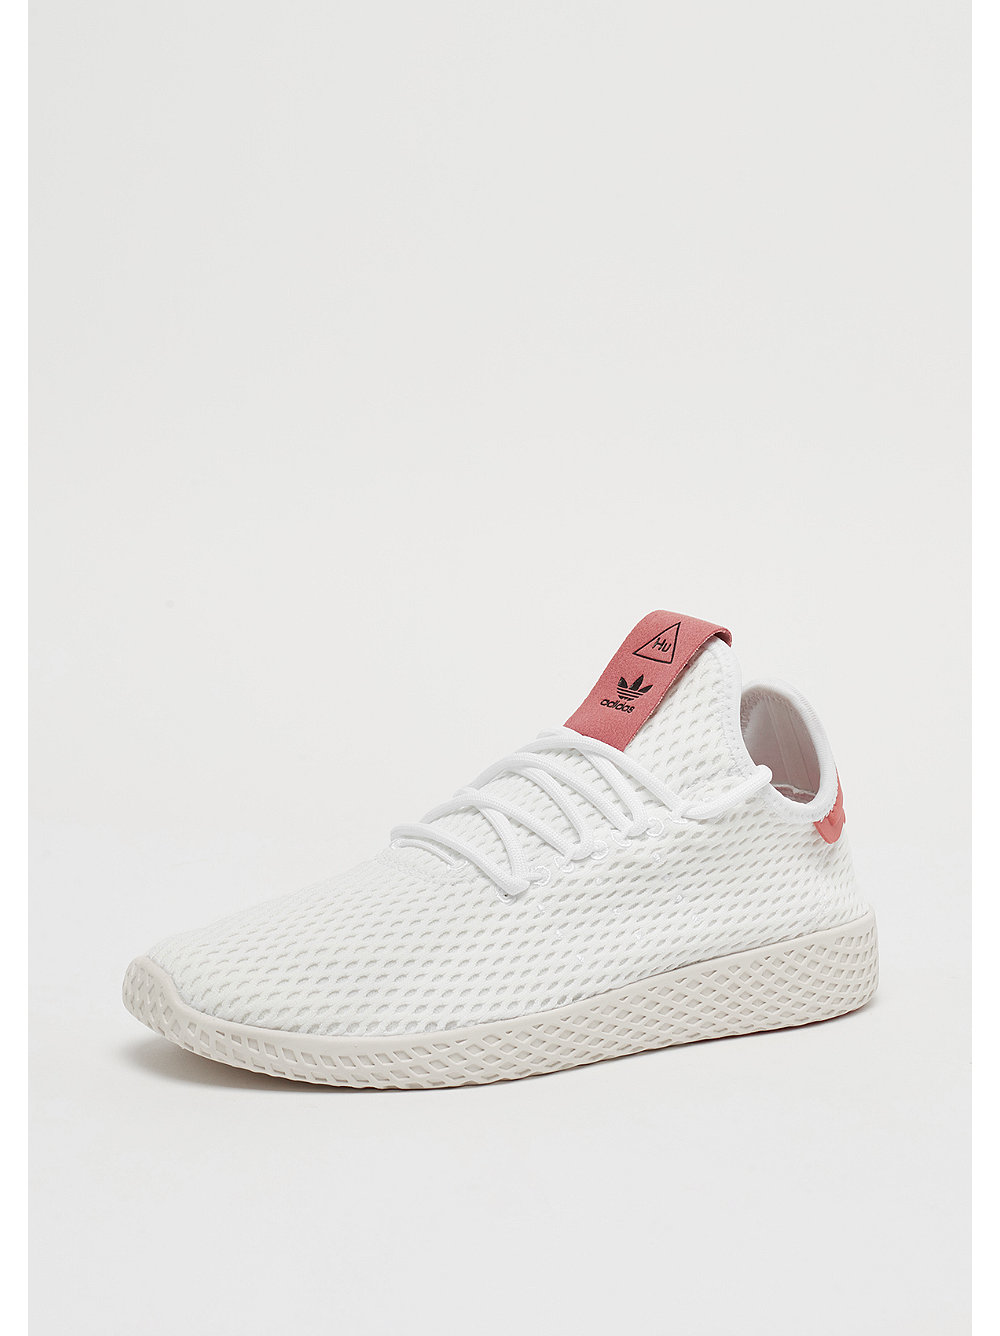 adidas pharrell williams tennis hu white red bei snipes. Black Bedroom Furniture Sets. Home Design Ideas